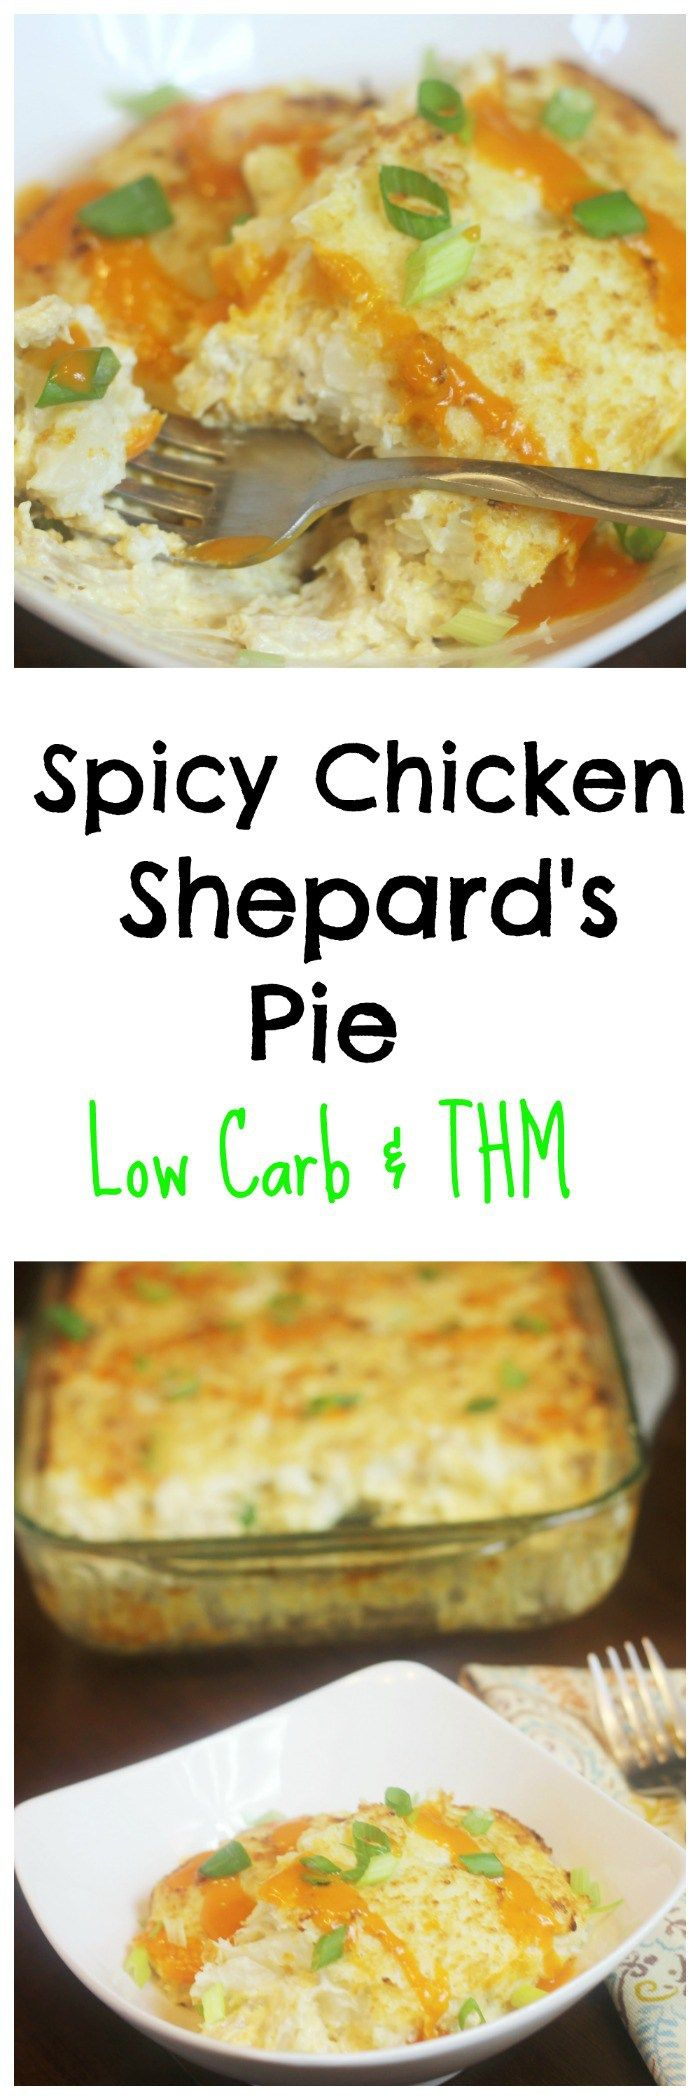 Spicy Chicken Shepard's Pie || Low Carb, THM Casserole, Buffalo Chicken....sub ranch for the hot sauce if you don't want spicy!